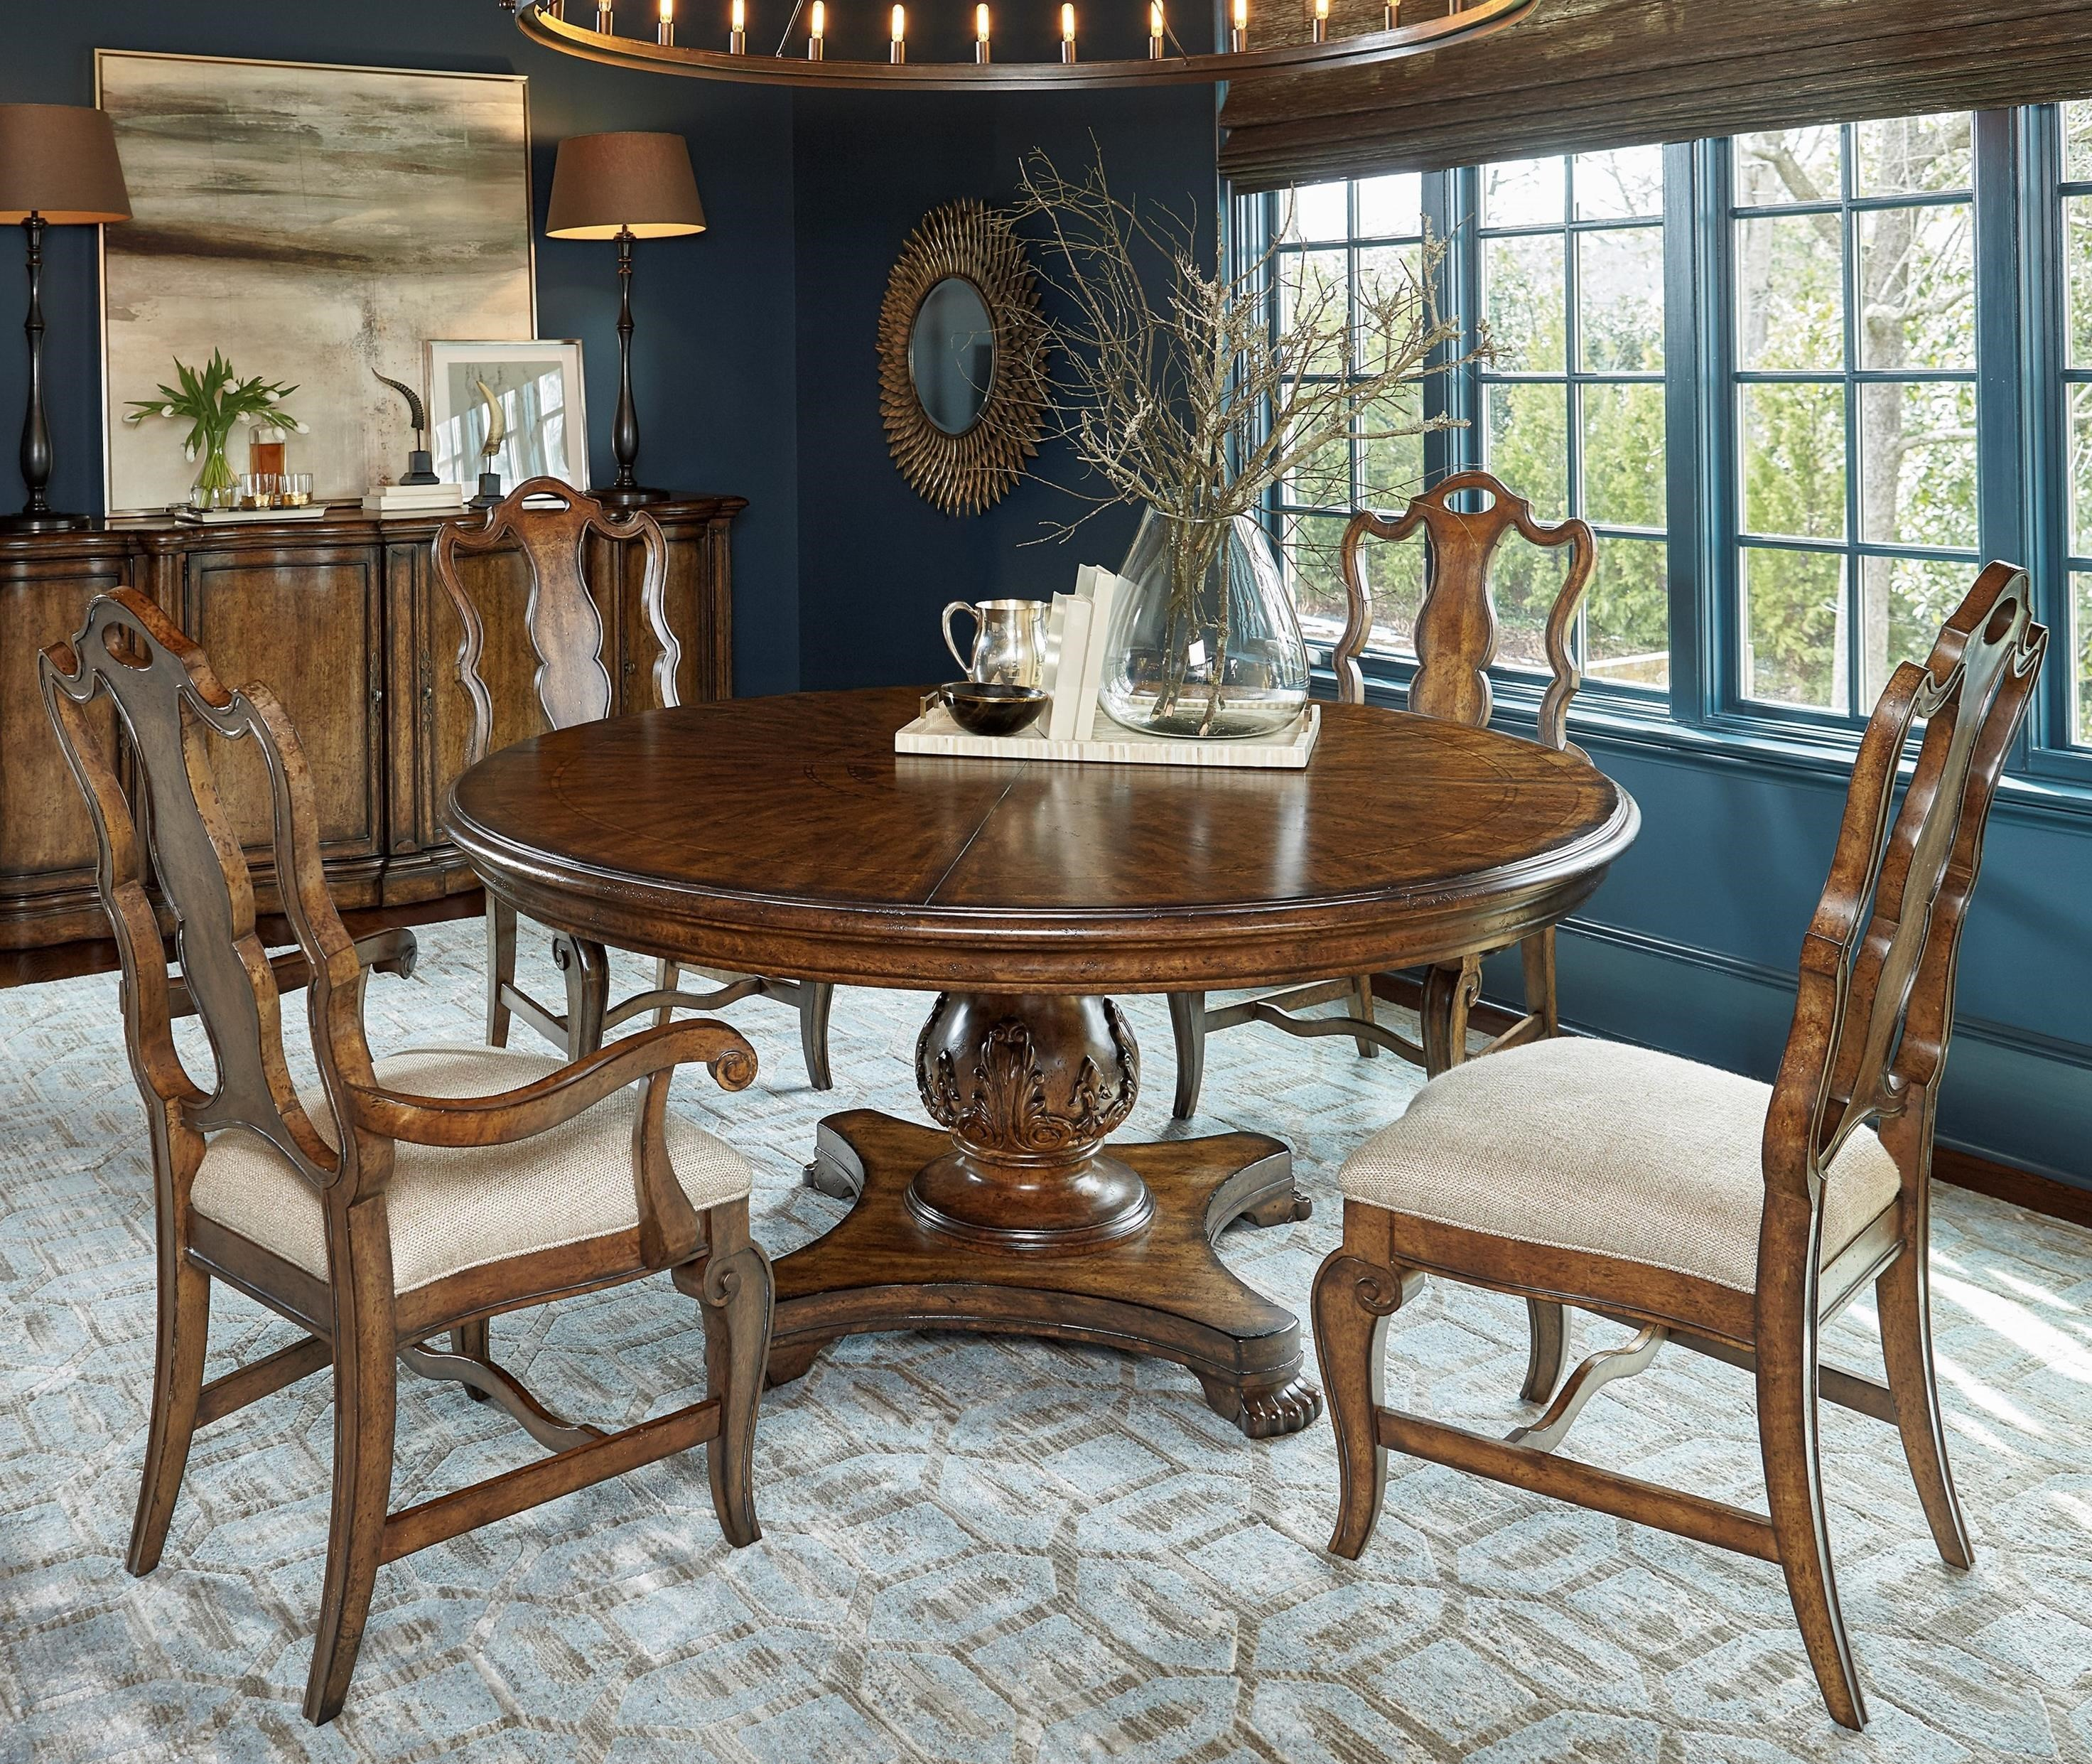 ... Round Dining Table Set. A.R.T. Furniture Inc Continental5-Piece 66 ... & A.R.T. Furniture Inc Continental 5-Piece 66